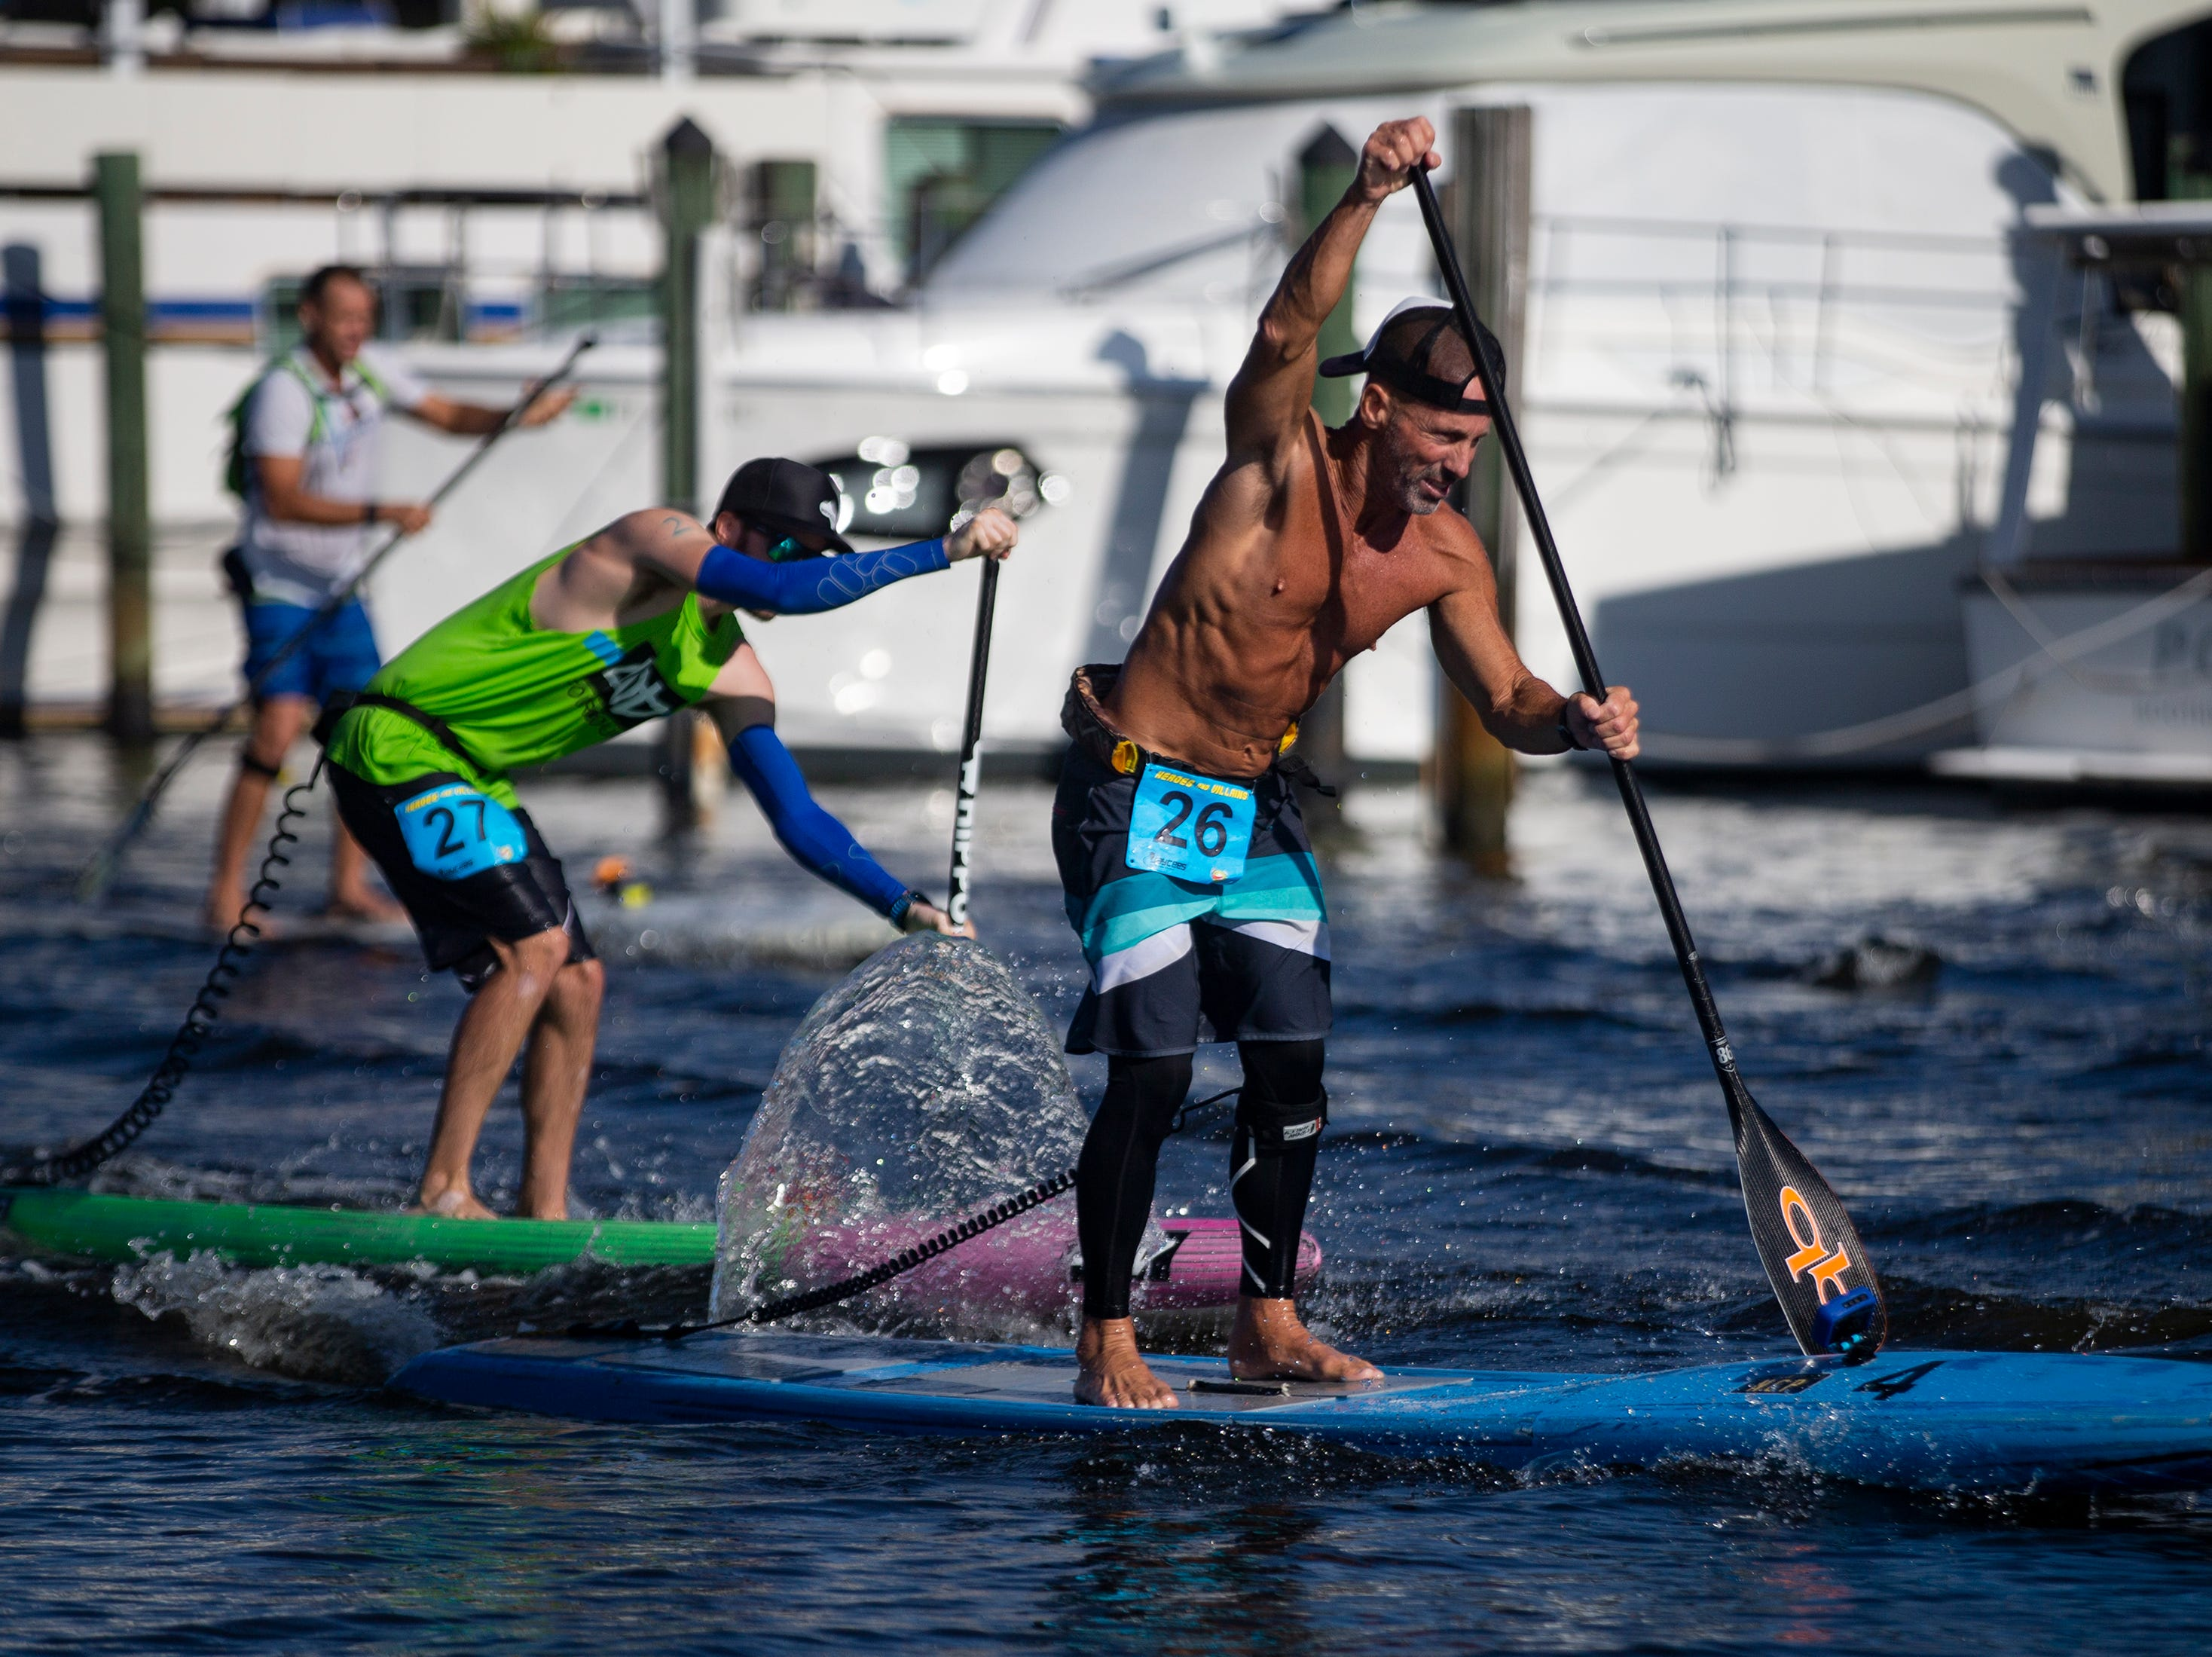 Mark Athanacio from Bonita Springs, competes in the professional paddleboard race, Saturday, May 11, 2019, during the 43rd annual Great Dock Canoe Race at Crayton Cove in Naples.